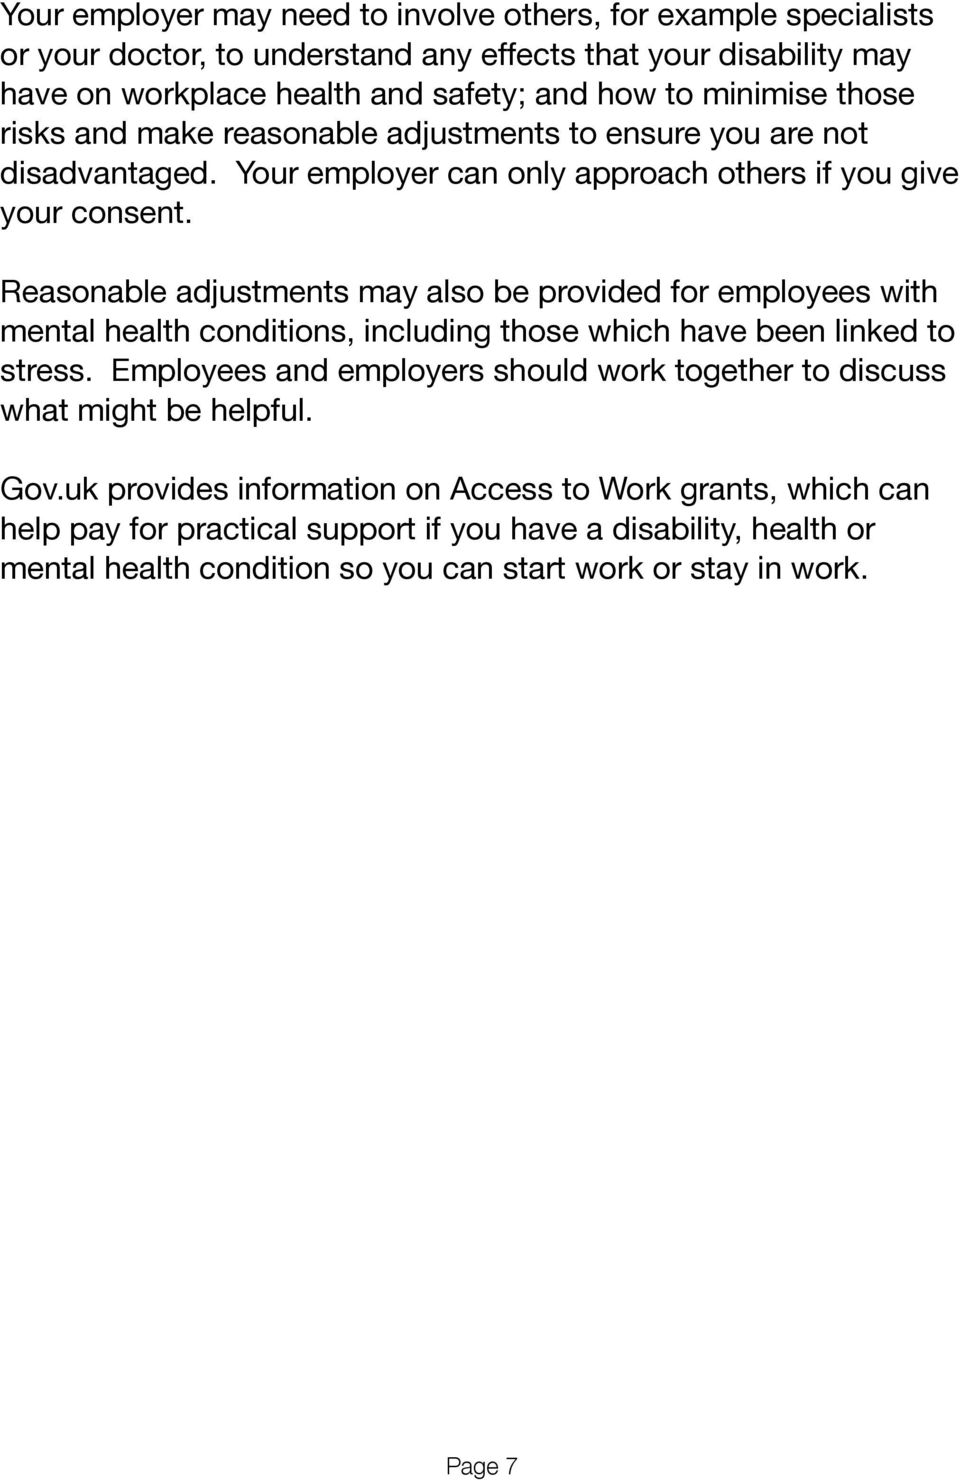 Reasonable adjustments may also be provided for employees with mental health conditions, including those which have been linked to stress.